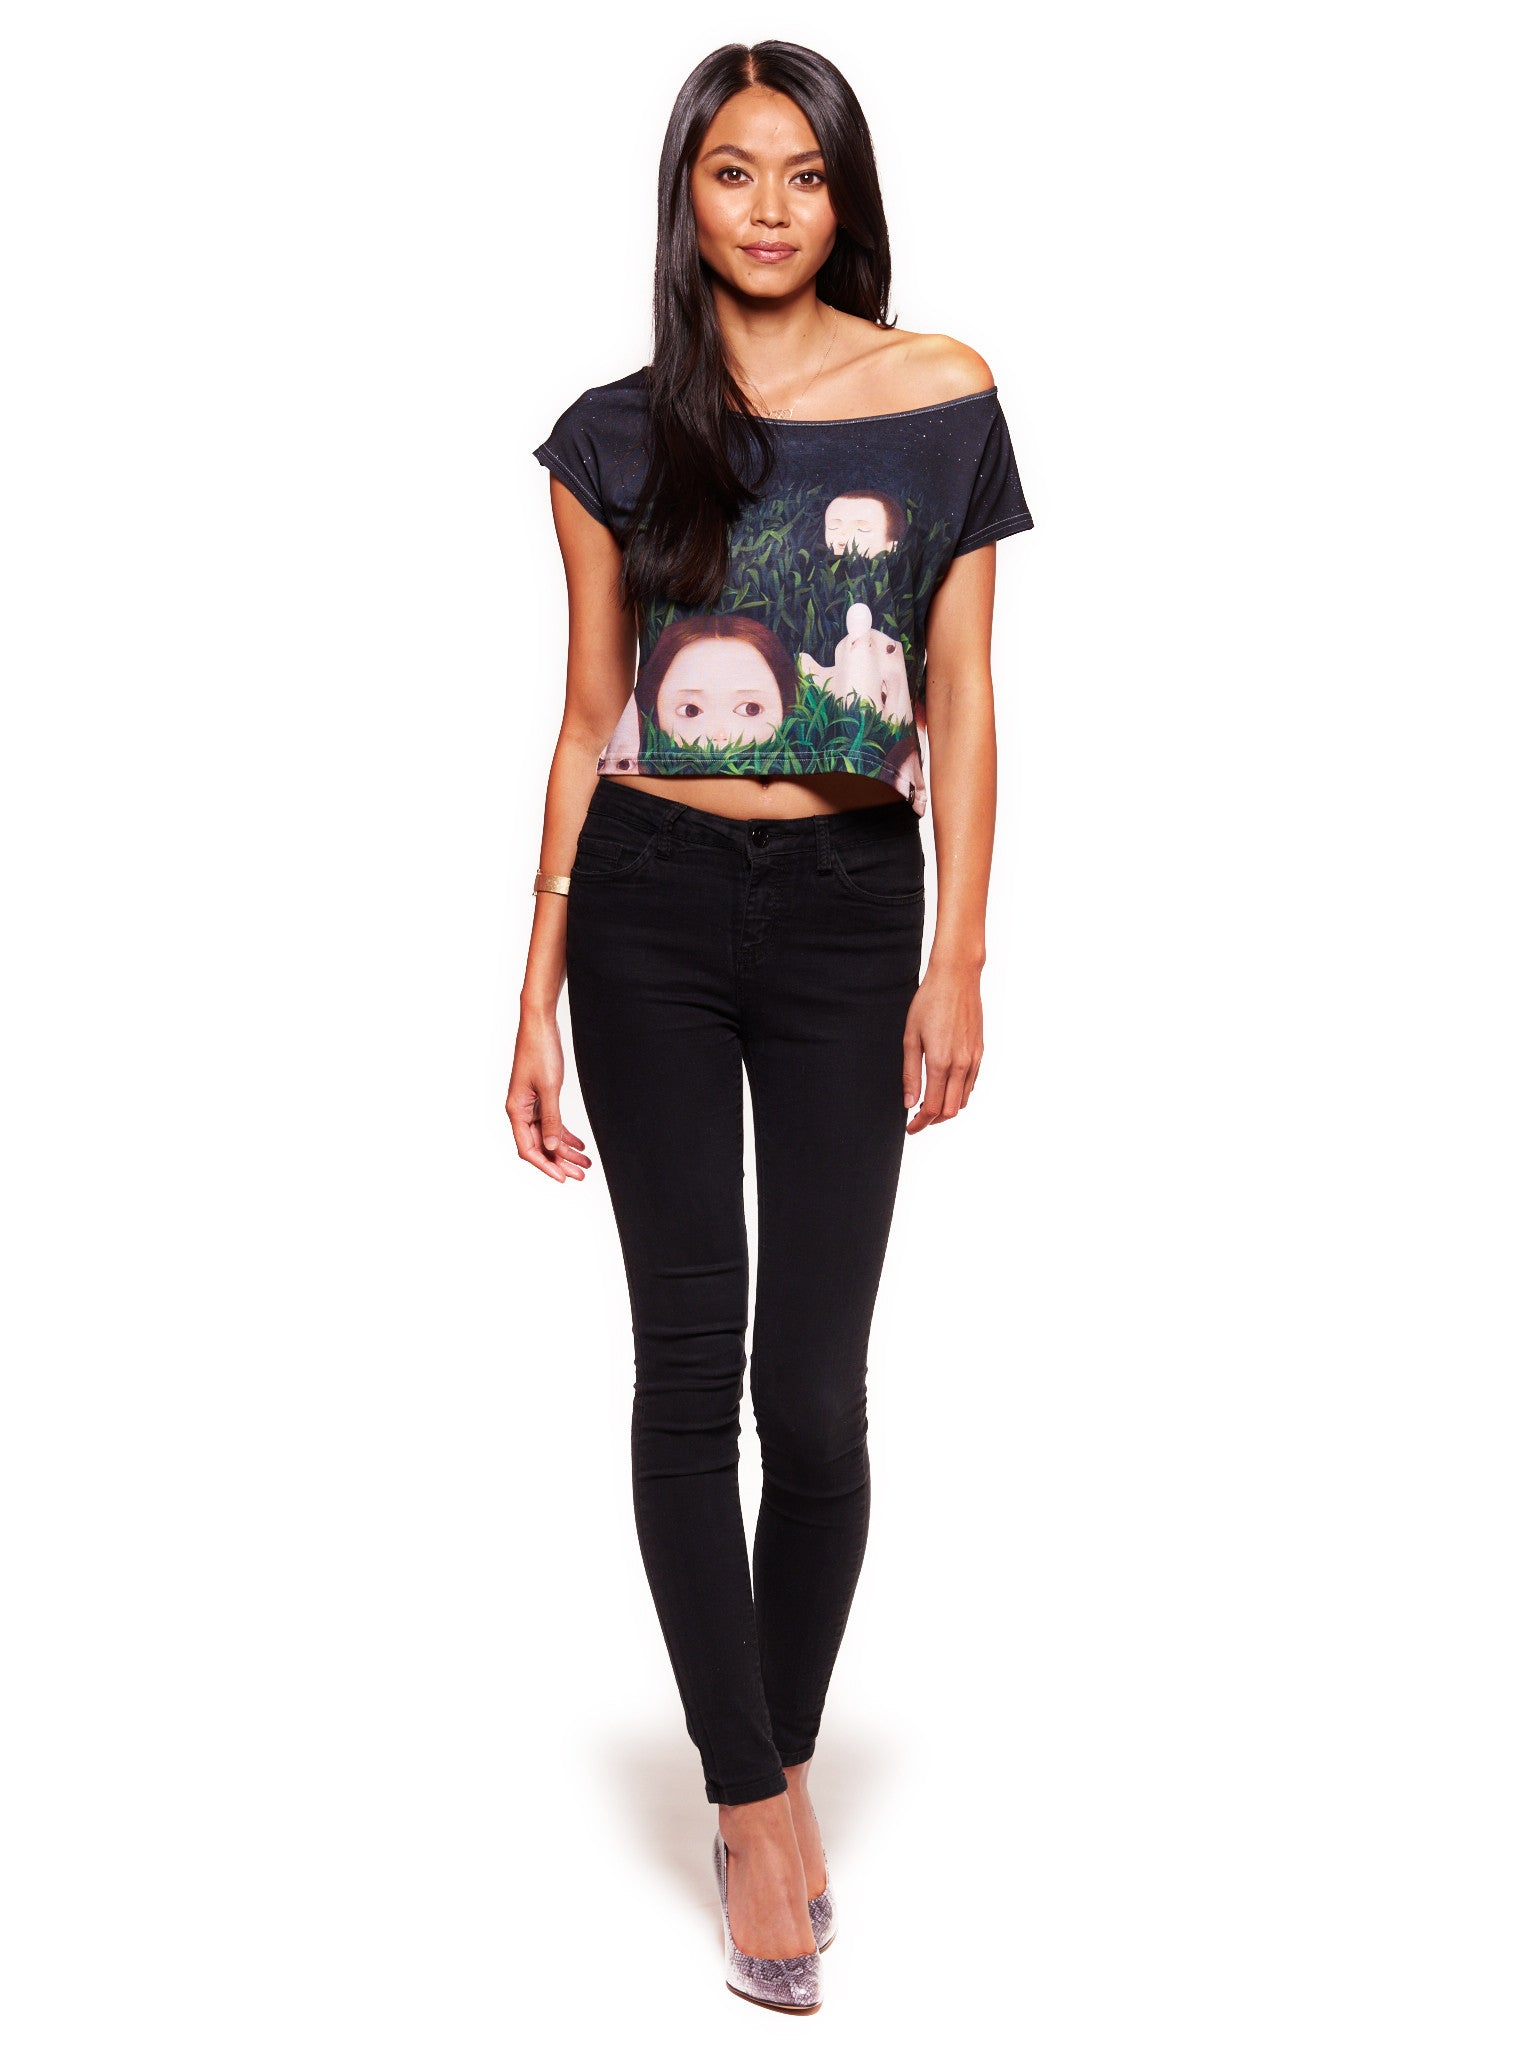 Wild Life Women's Crop Top - Nuvango Gallery & Goods - 3